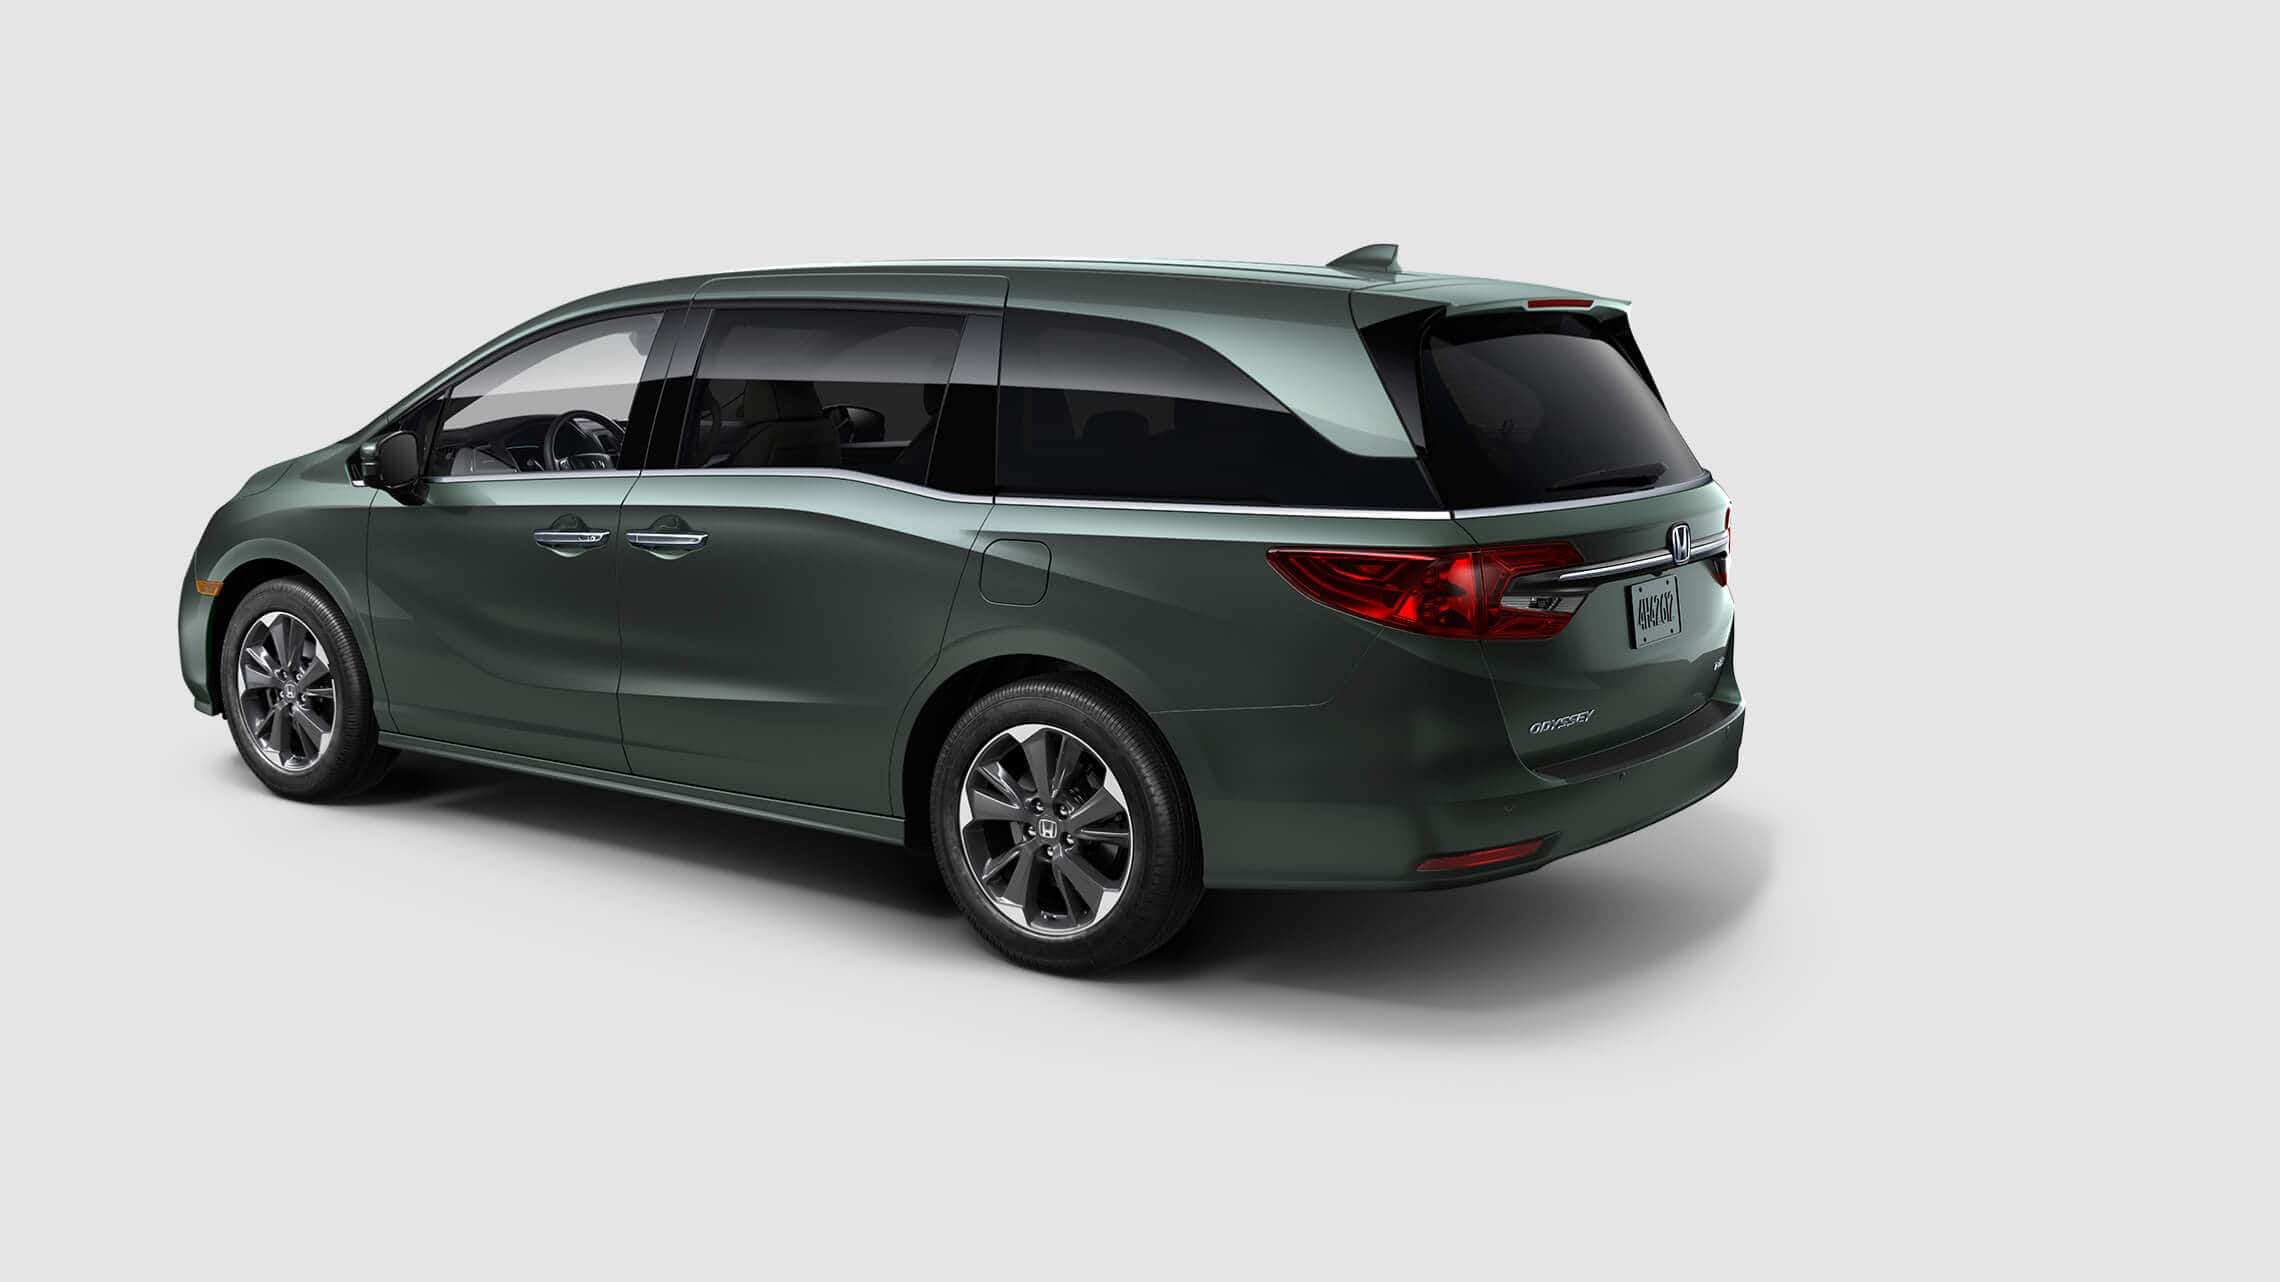 Rear driver-side view of the 2021 Honda Odyssey Elite in Forest Mist Metallic.